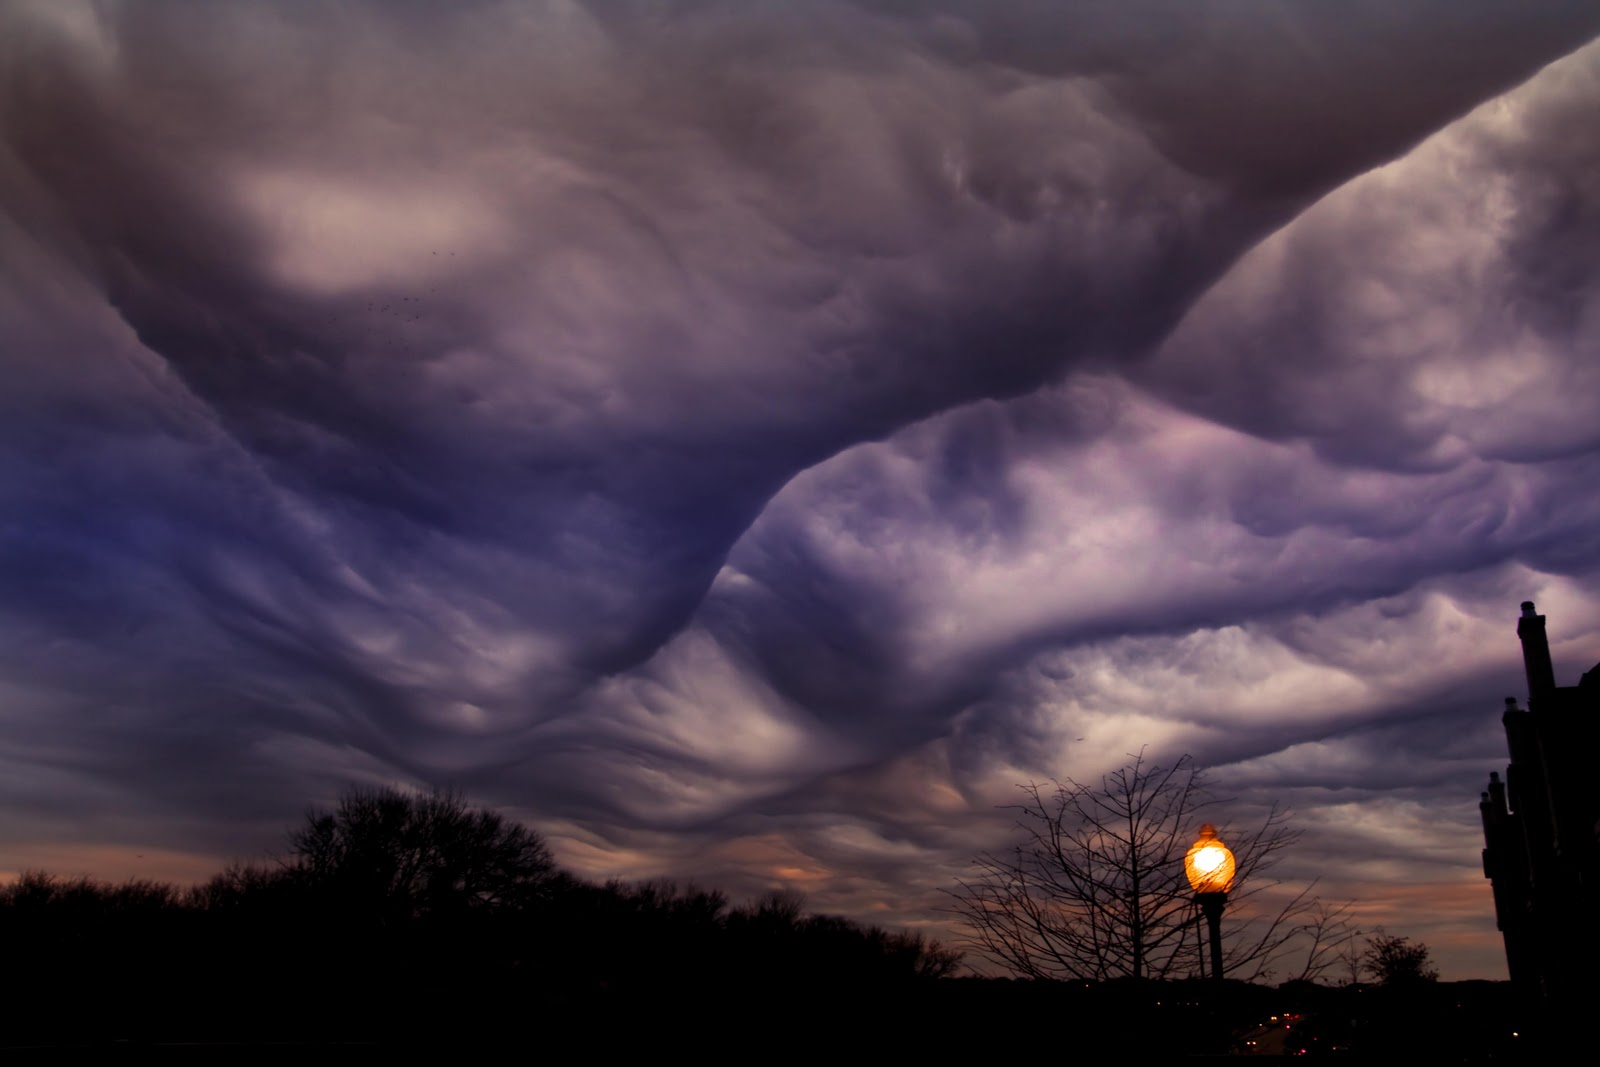 The breathtaking undulatus asperatus clouds